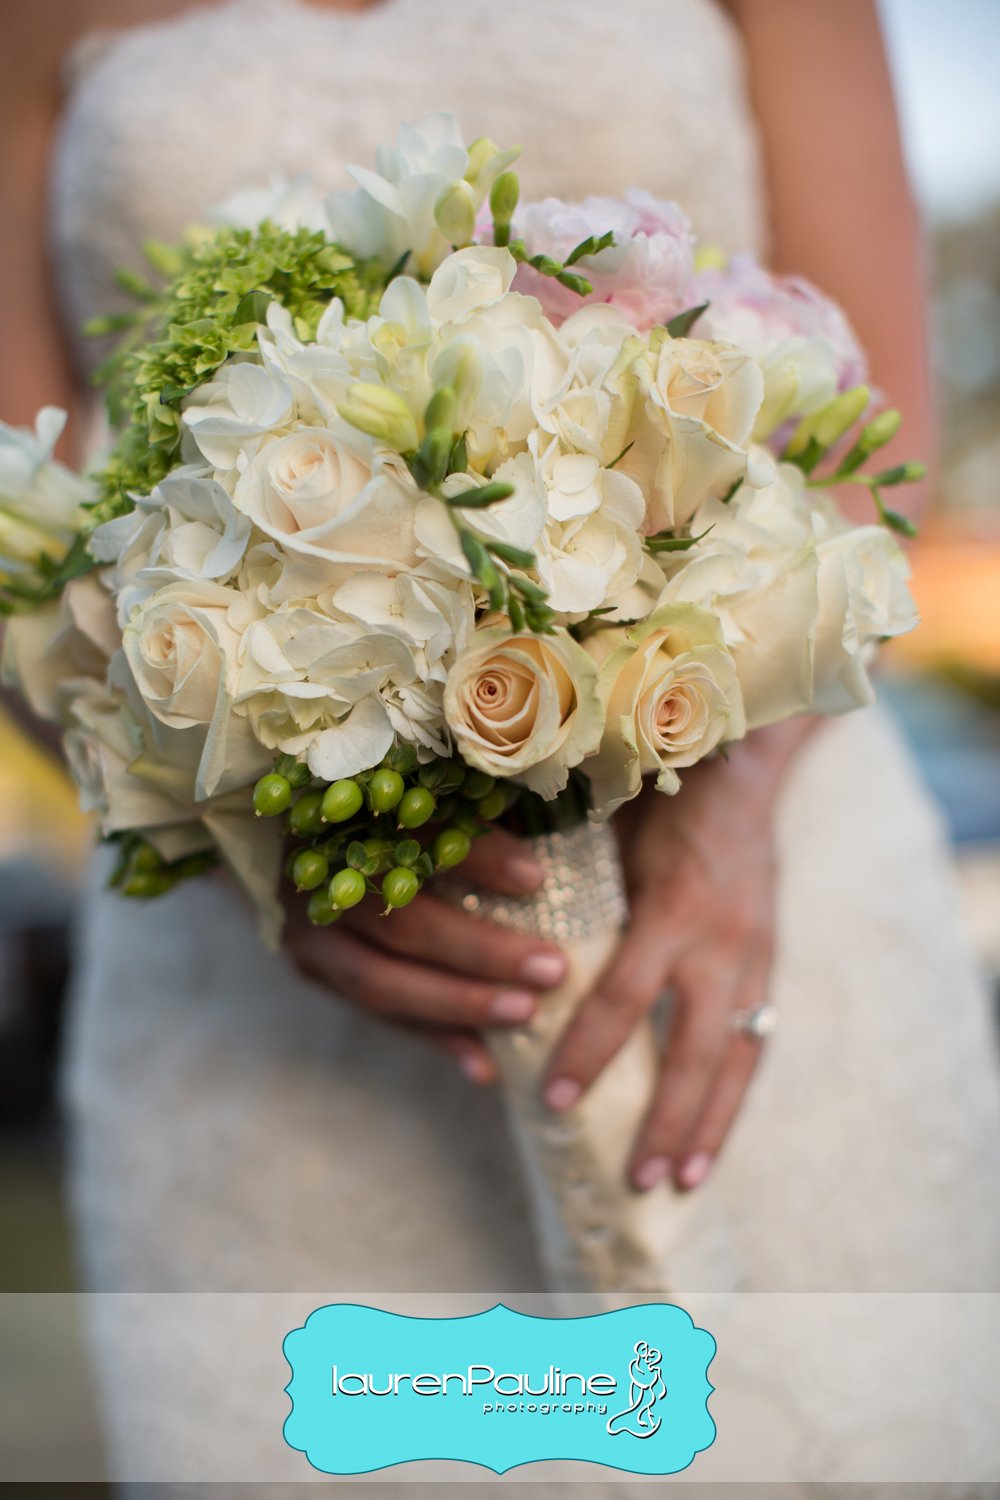 The bride carried a bouquet of hydrangea, roses, peonies, freesia, viburnum, and hypericum berries